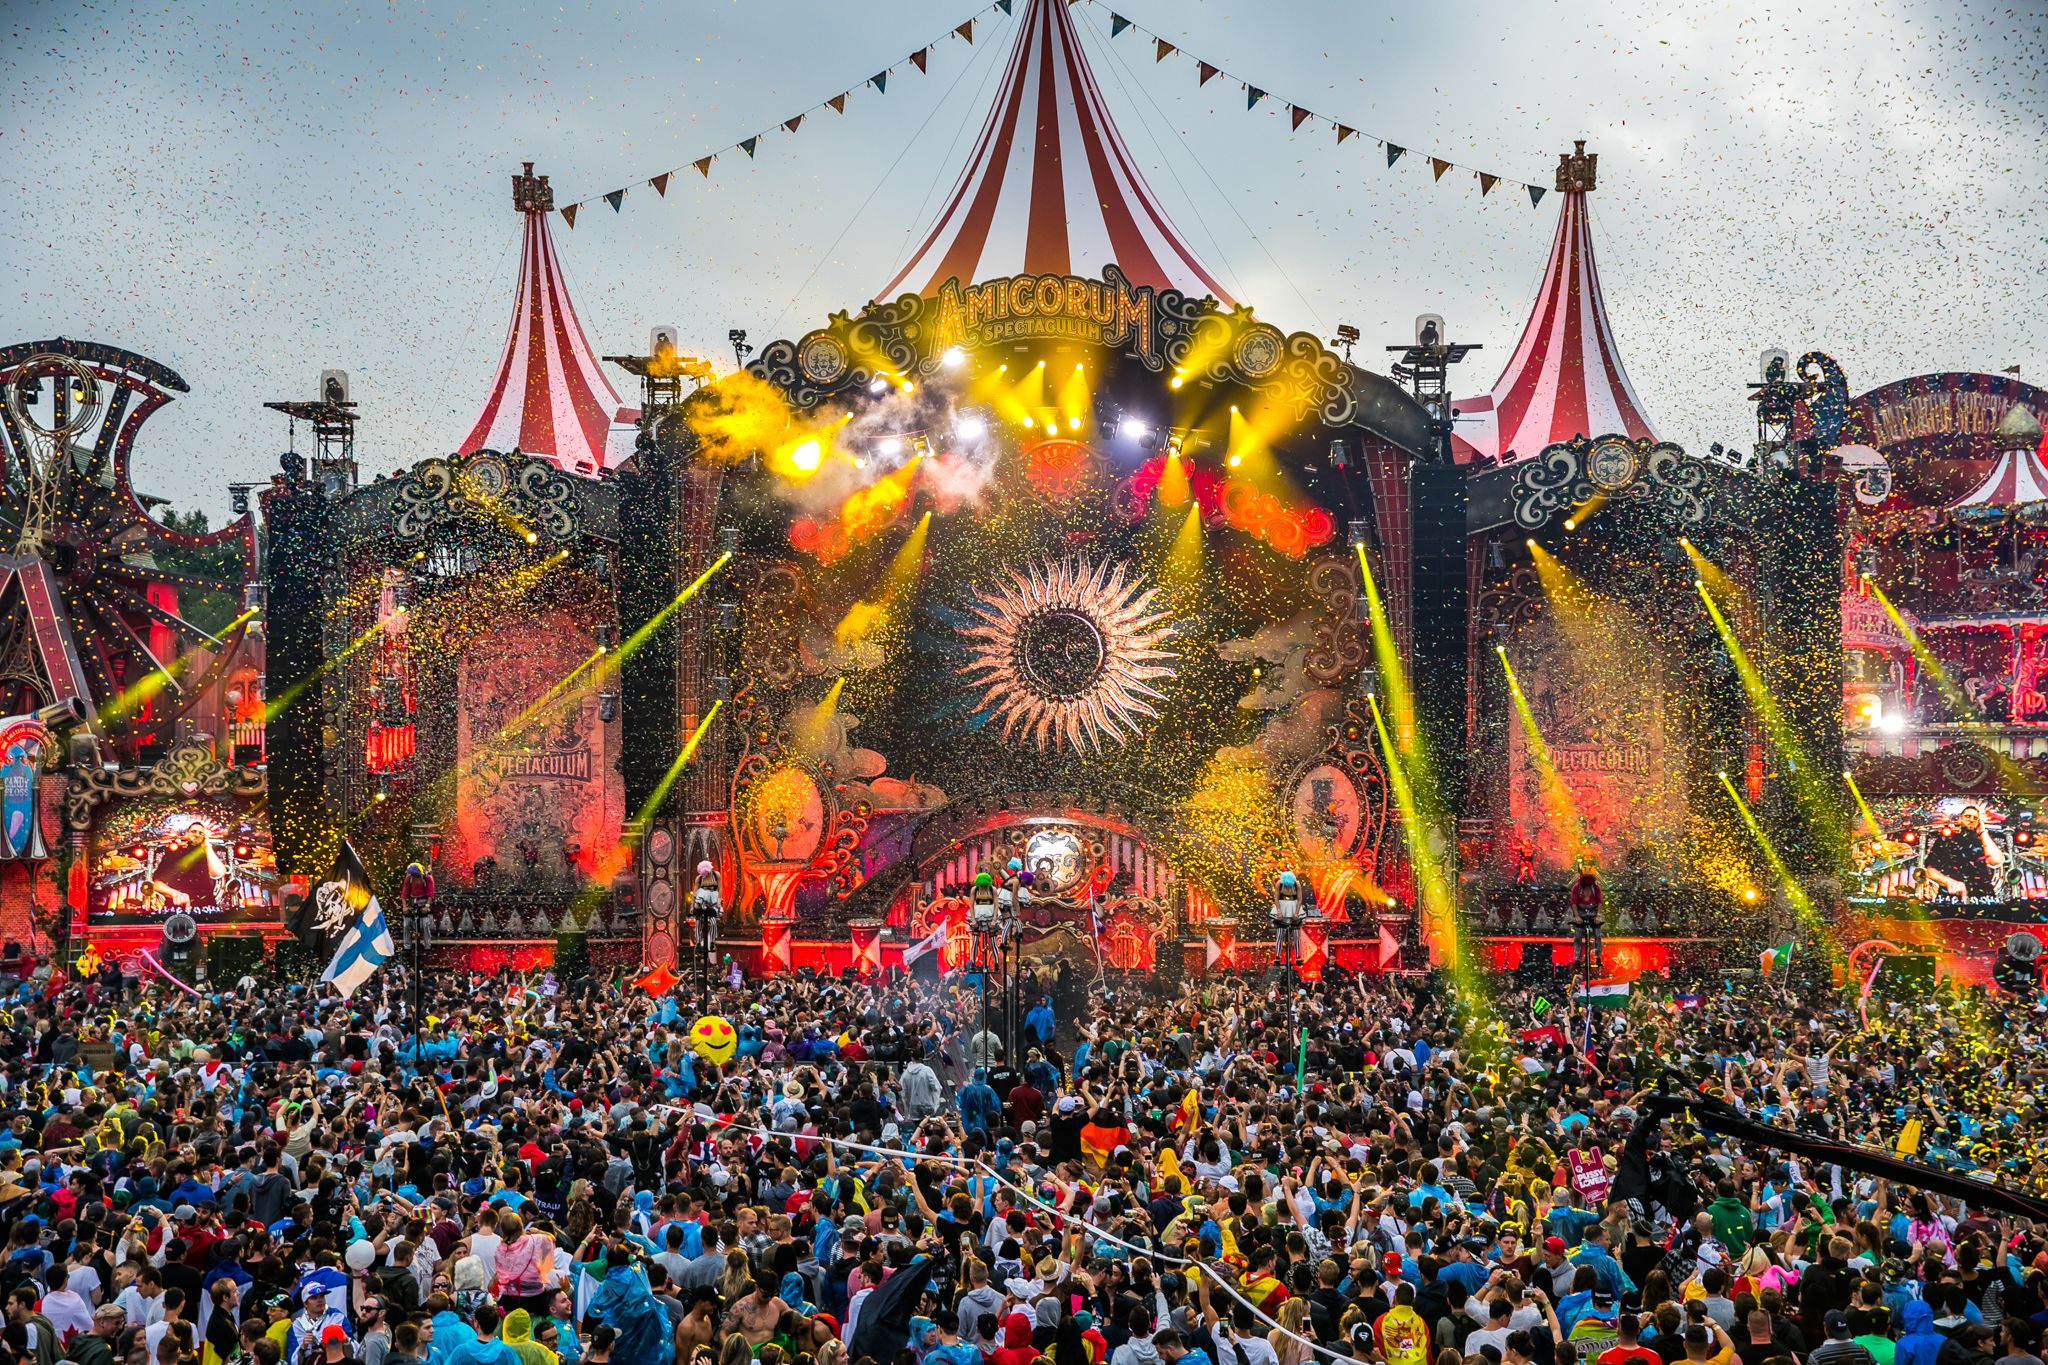 Tomorrowland 2019 Ones To Watch With Images Tomorrowland